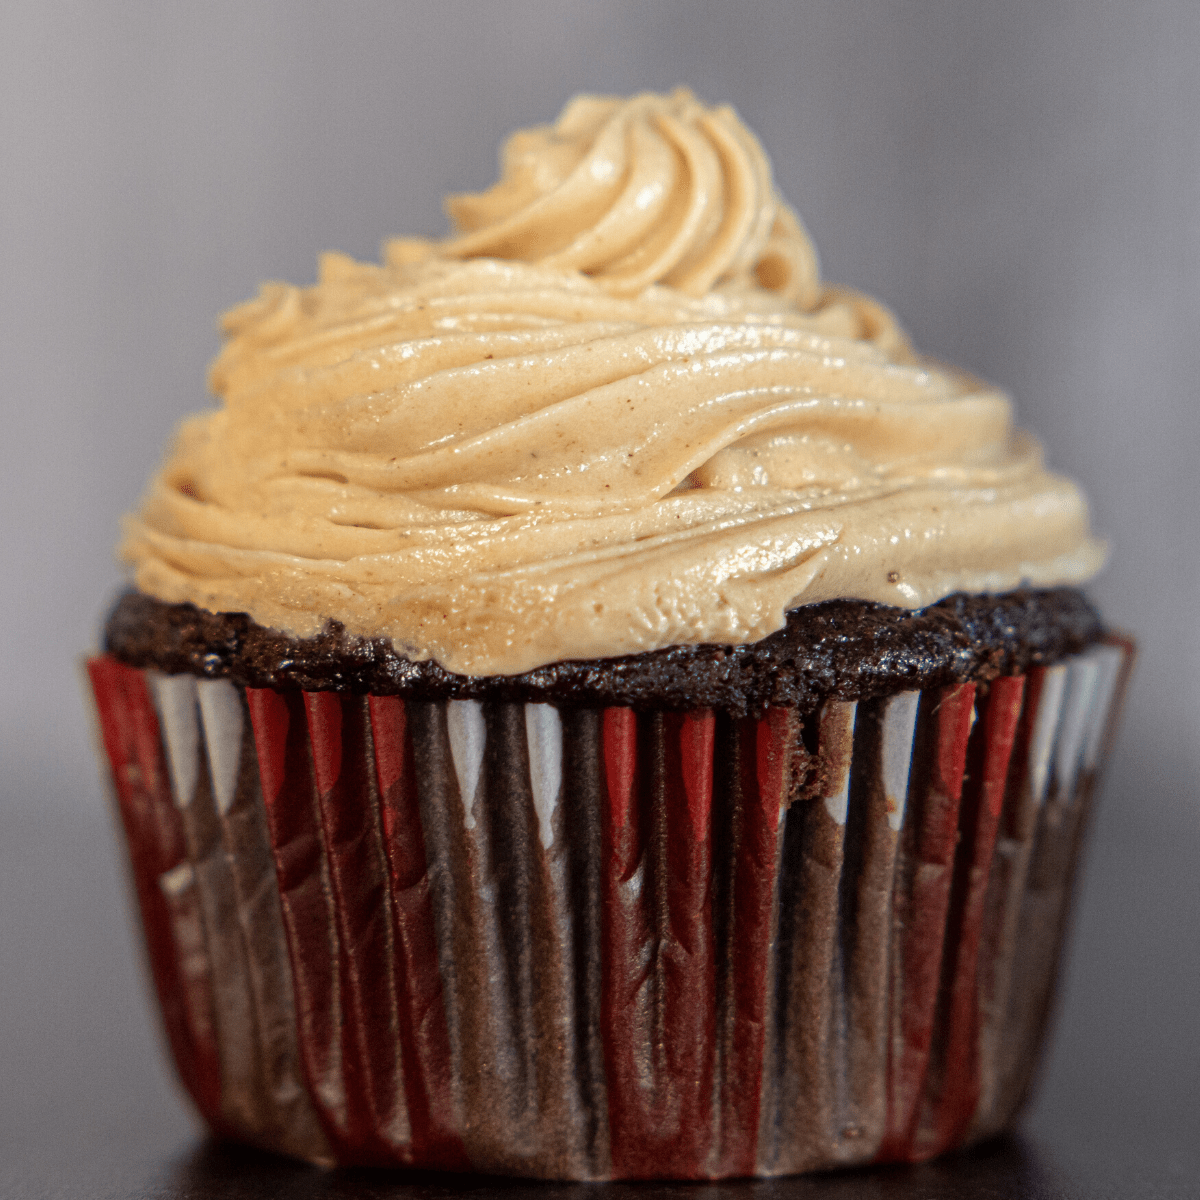 Low Carb Keto Peanut Butter Frosting Recipe FI